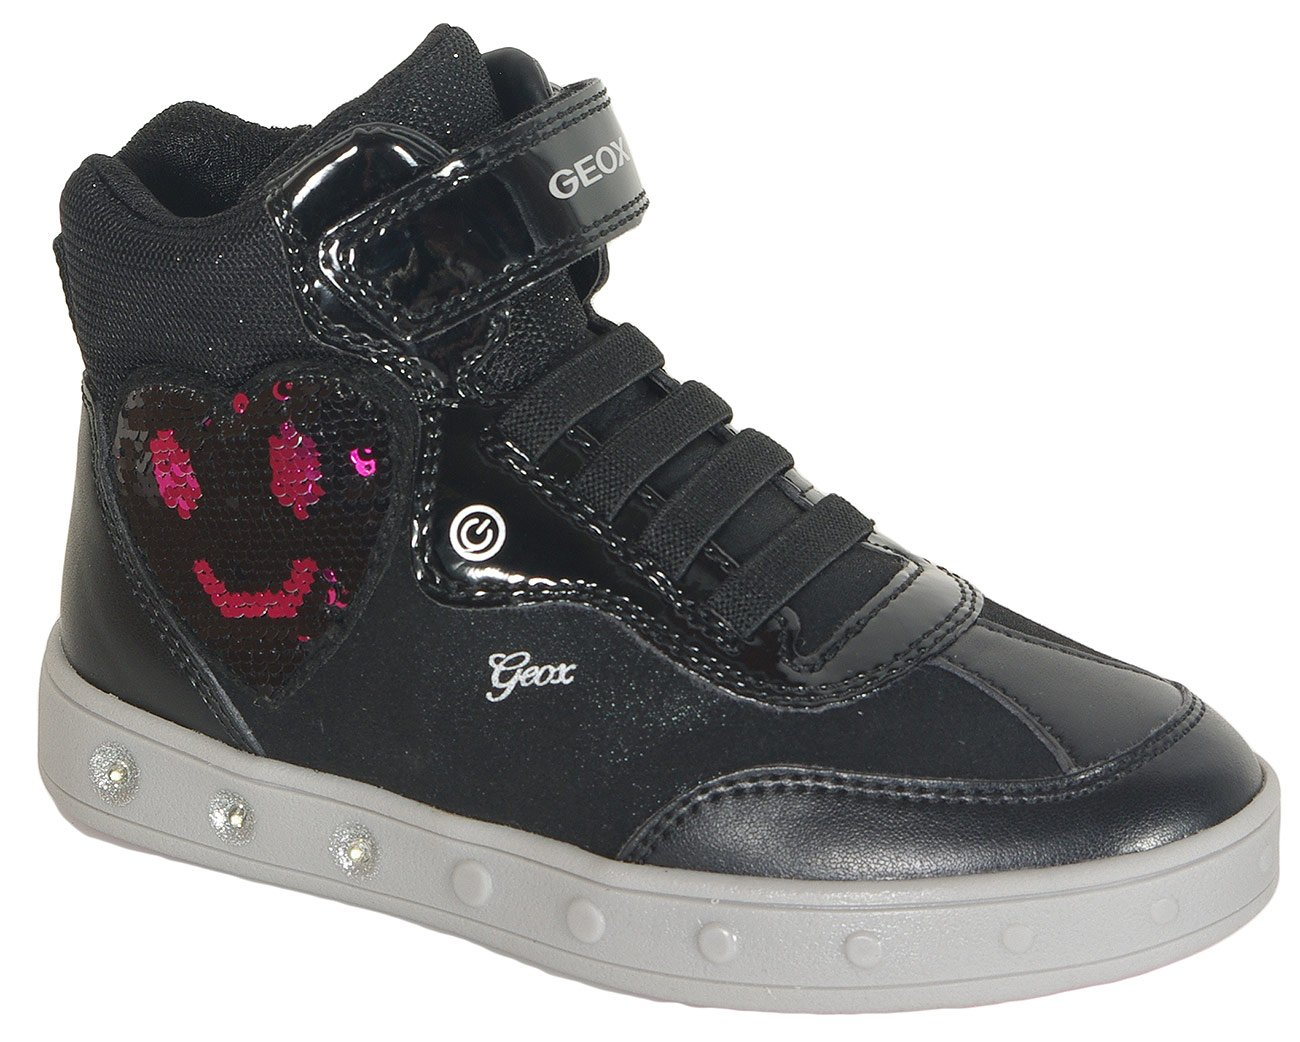 Geox Skylin sneakers girl black/fuchsia